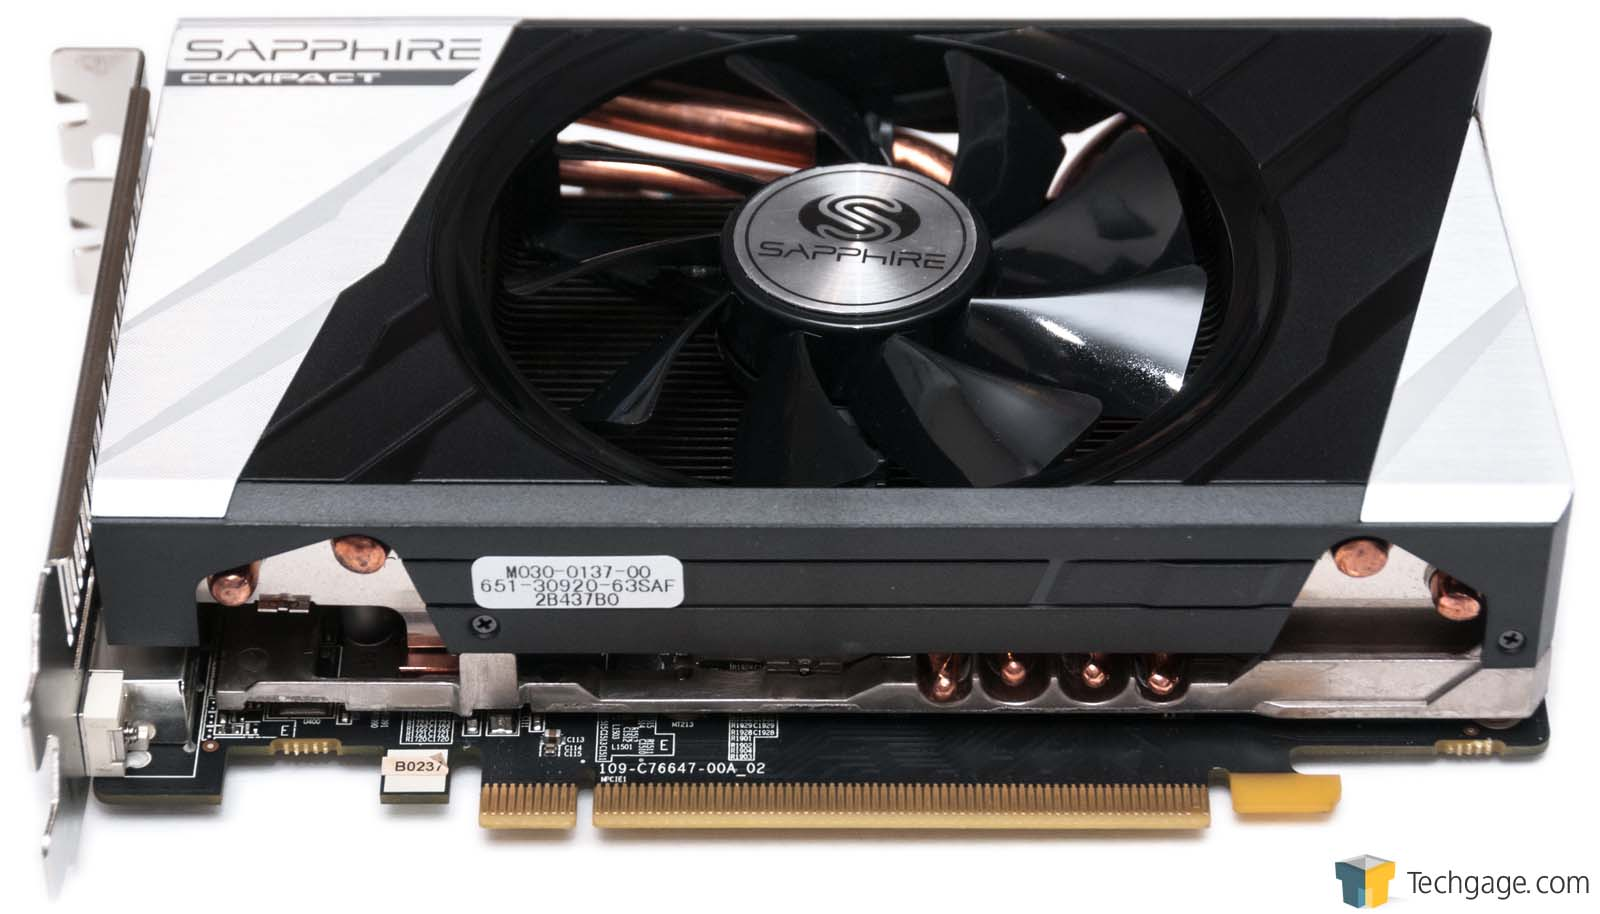 Sapphire Radeon R9 285 Itx Compact Graphics Card Review Techgage Vga His R7 250 2gb Ddr5